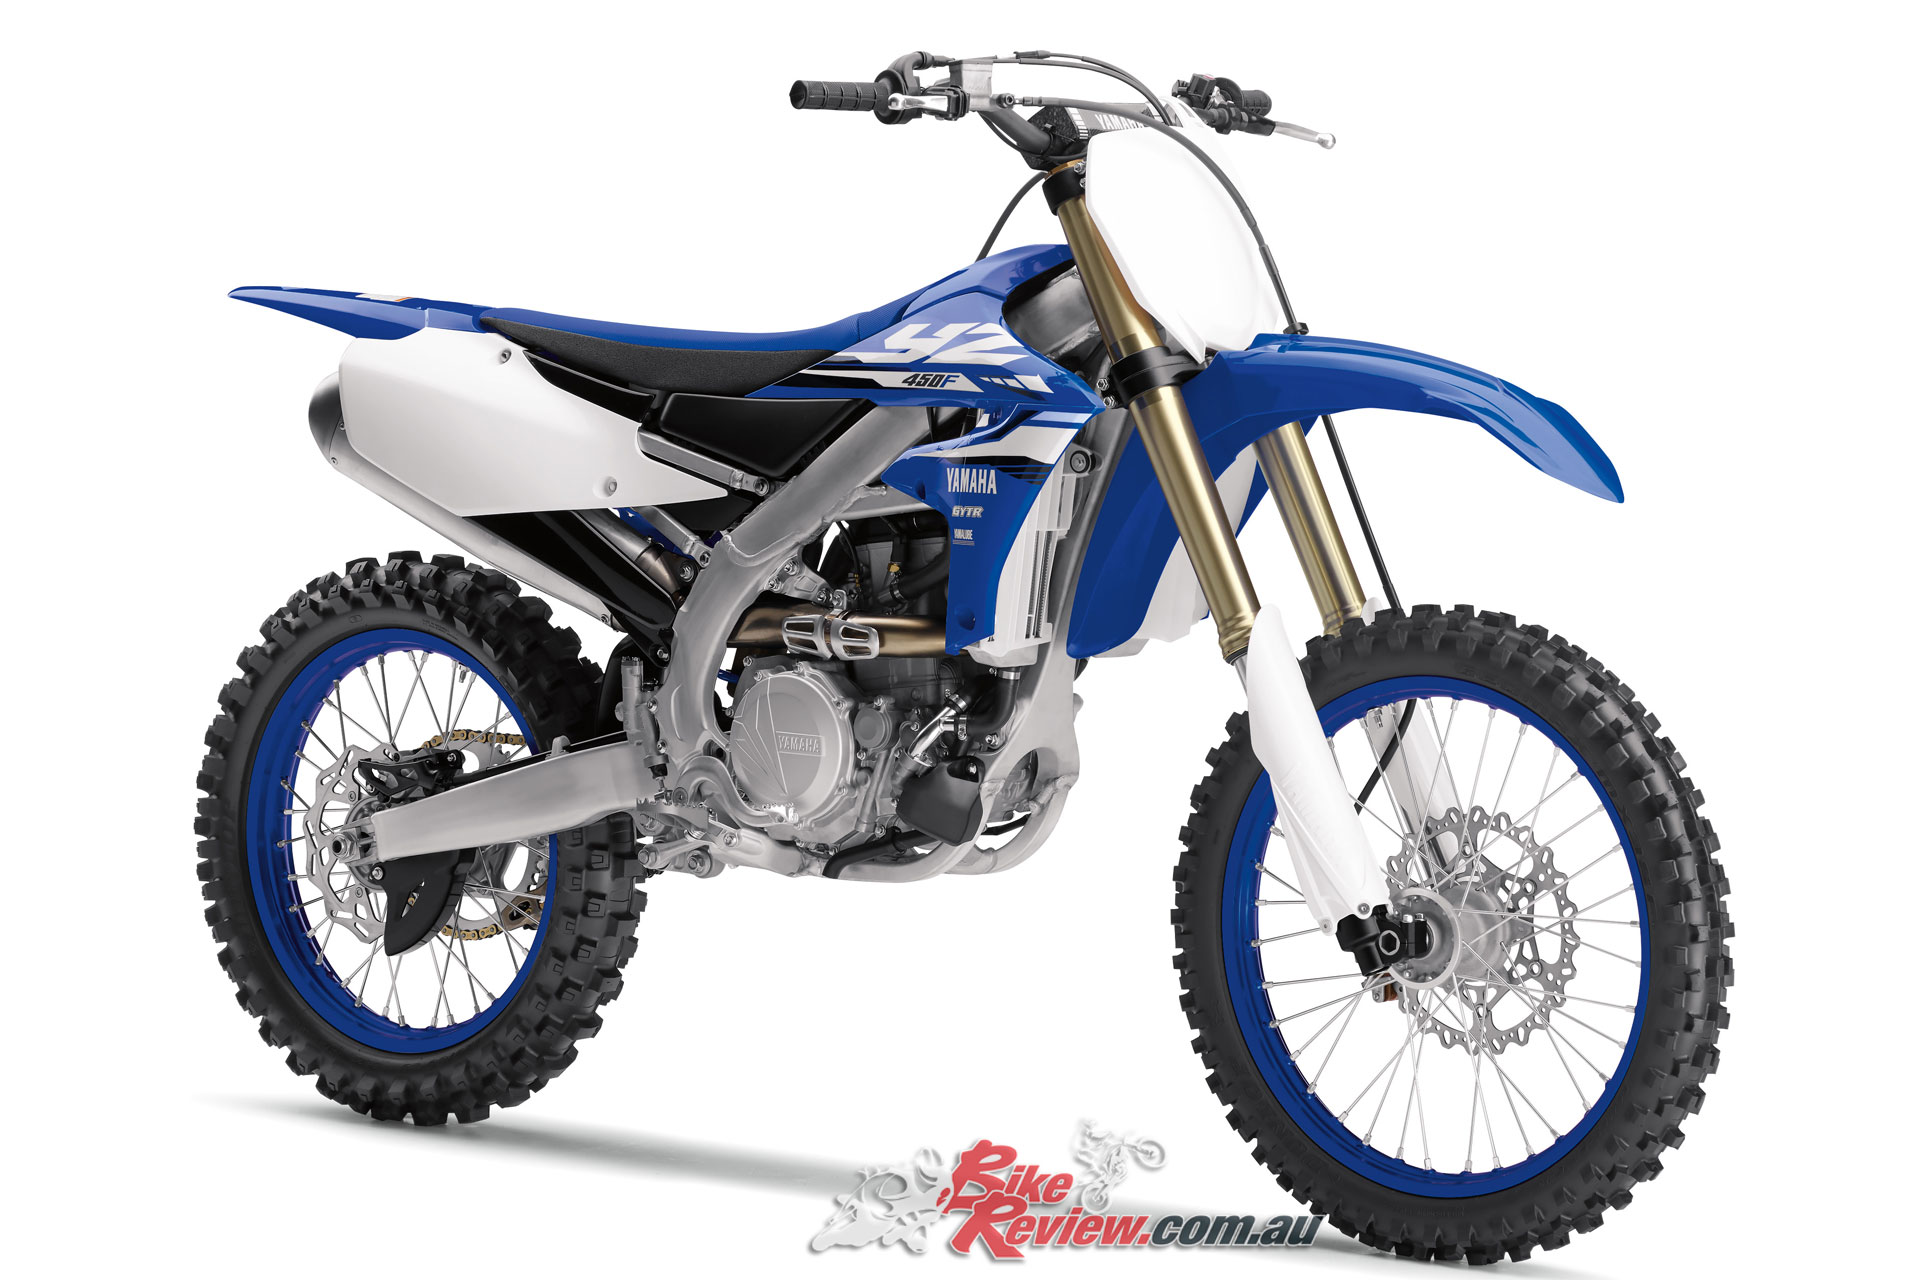 Yamaha 39 s all new yz450f arrives bike review for New yamaha 450